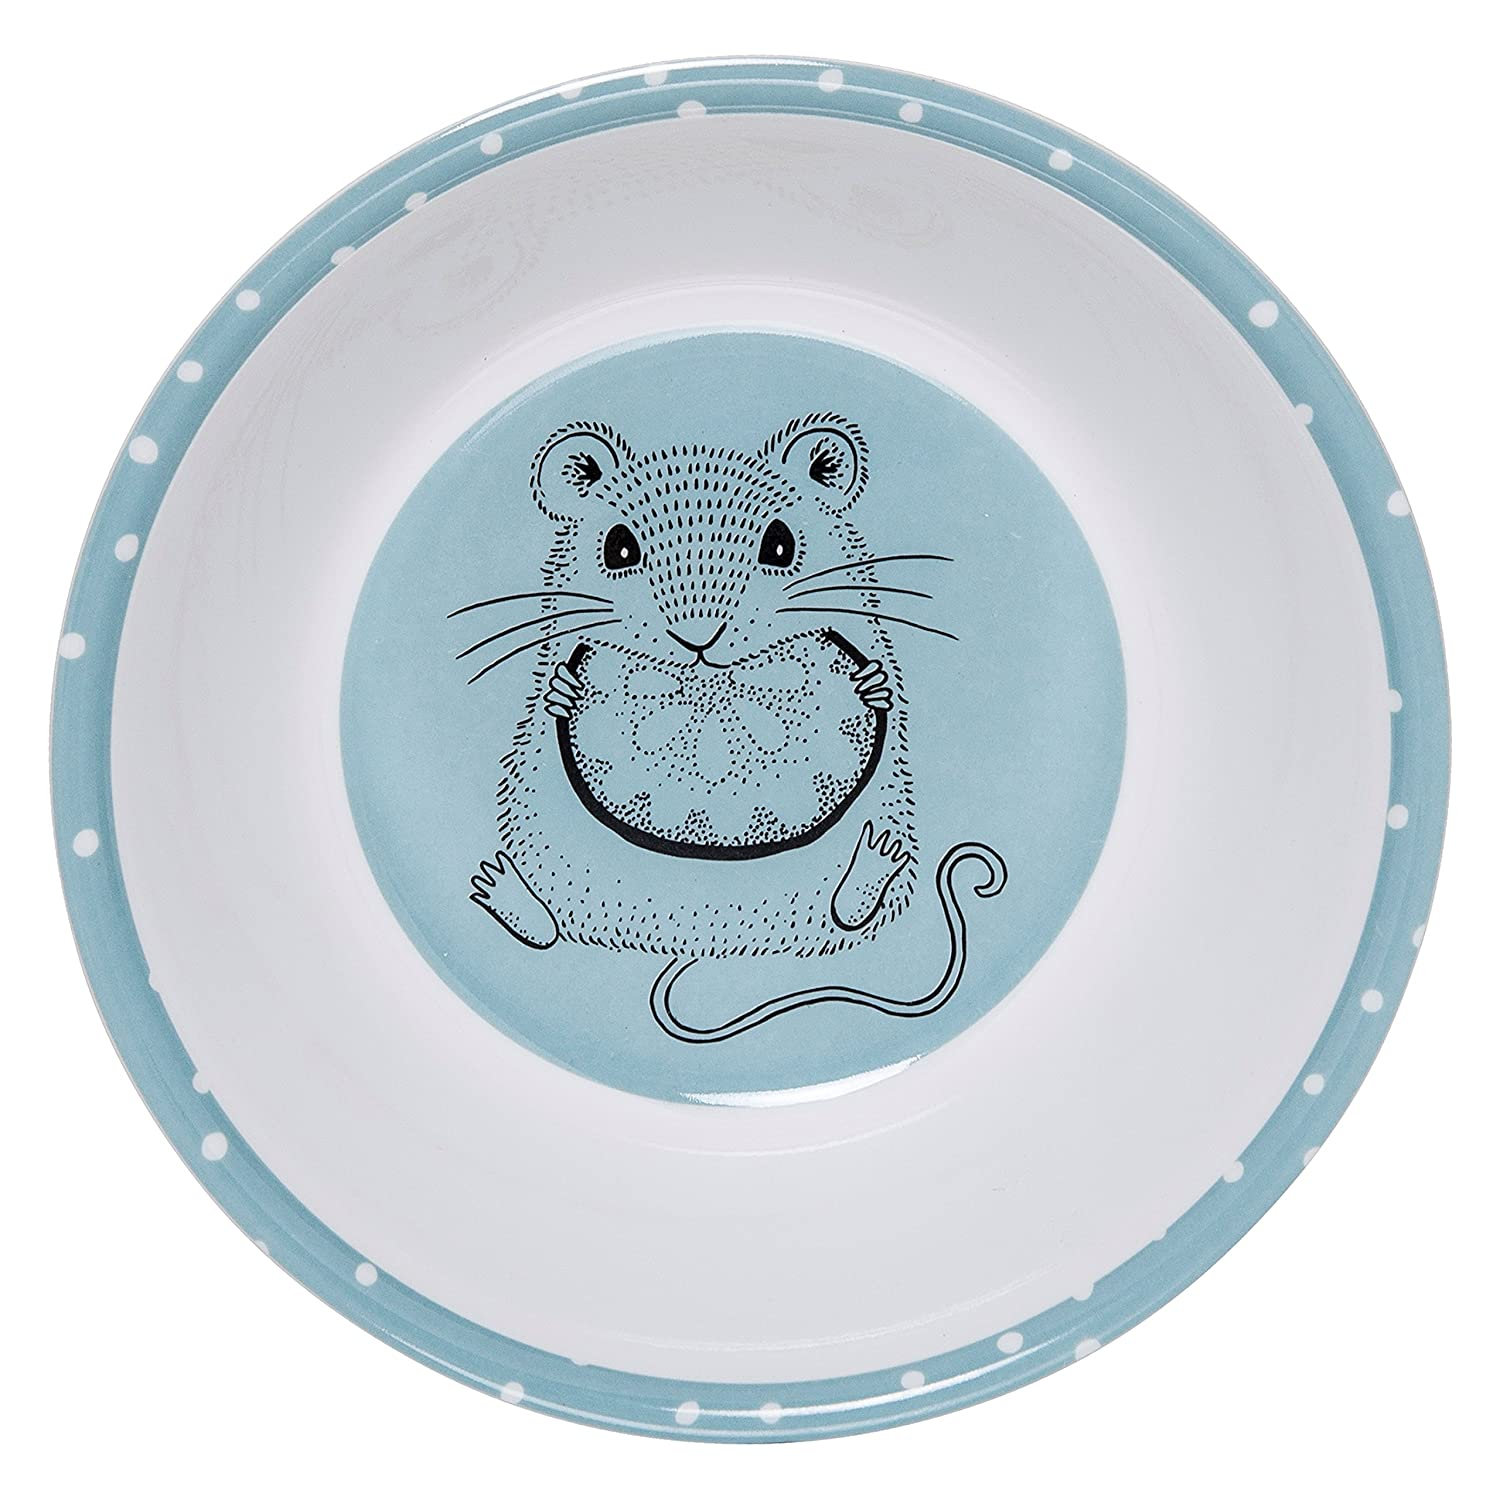 Multicolored Bloomingville A47305101 Bowl with Mouse